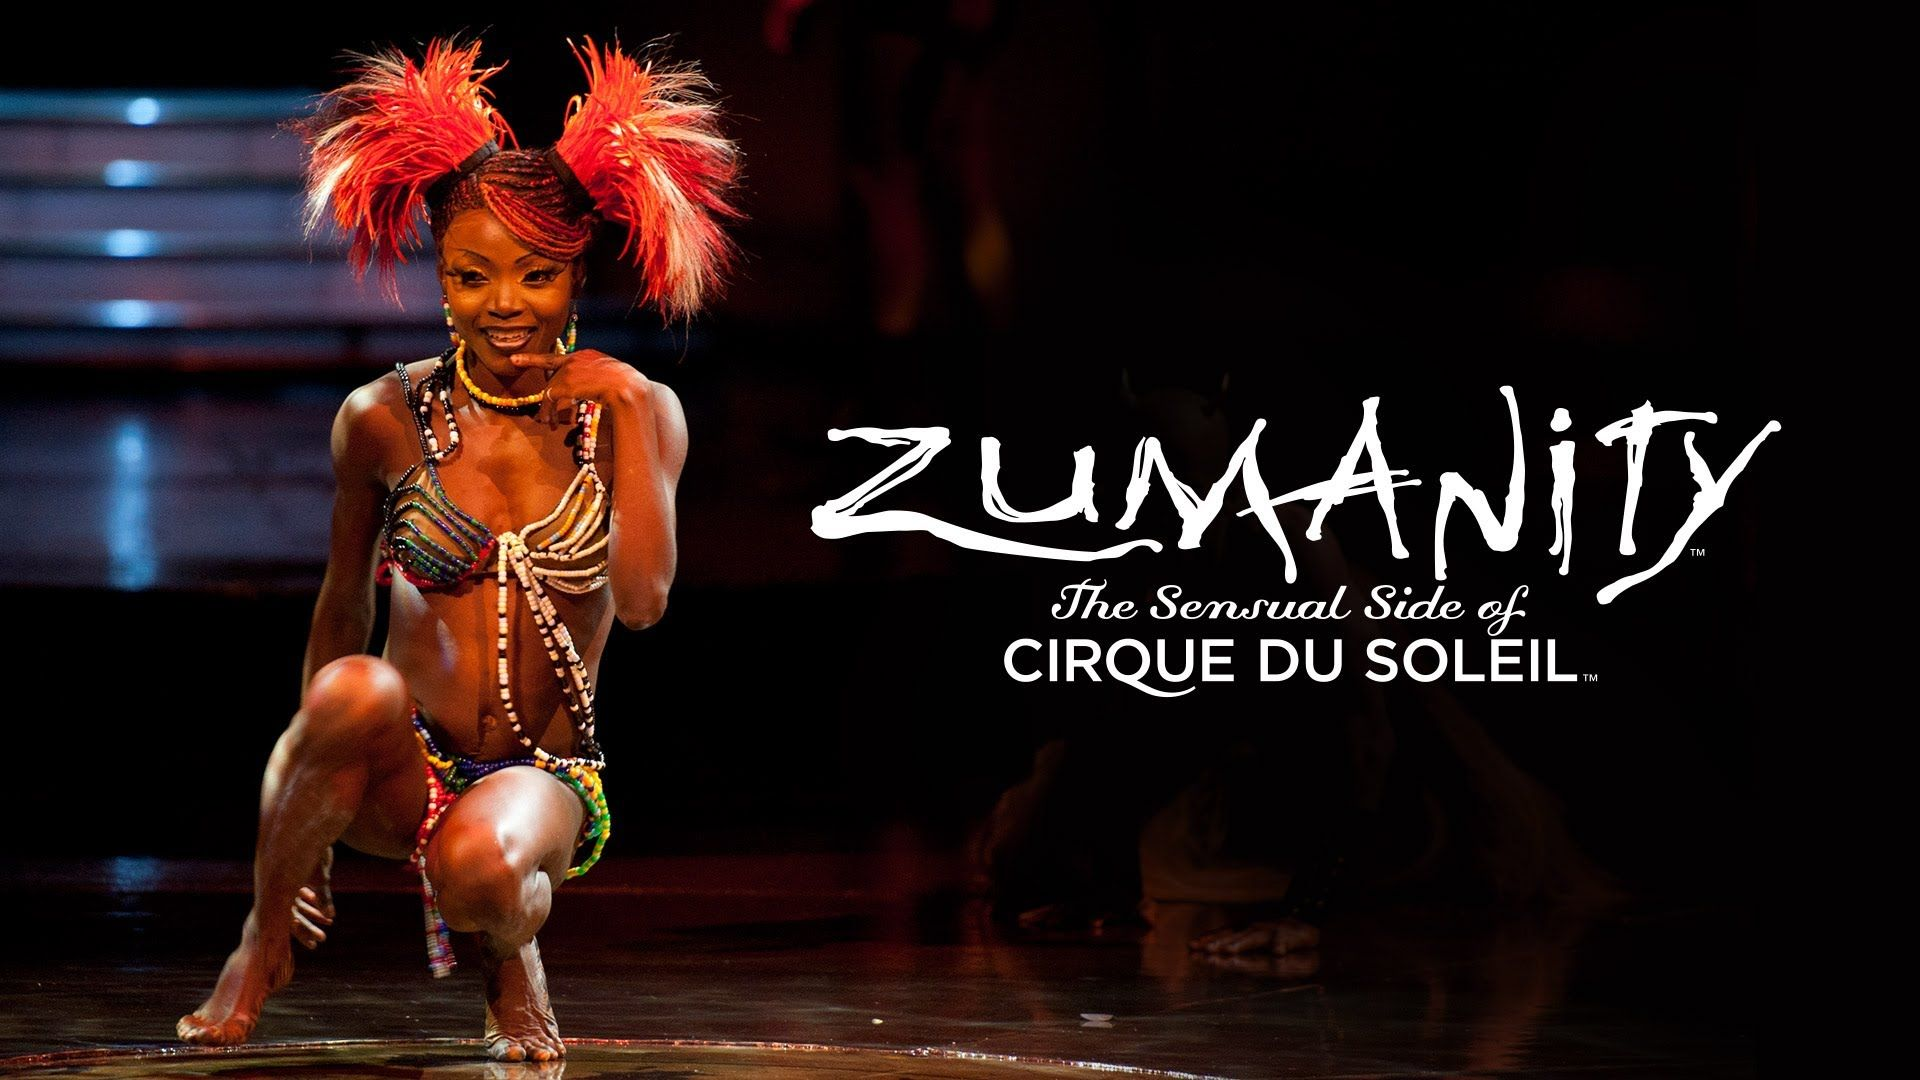 Zumanity By Cirque Du Soleil - Official Trailer Playlist-9871